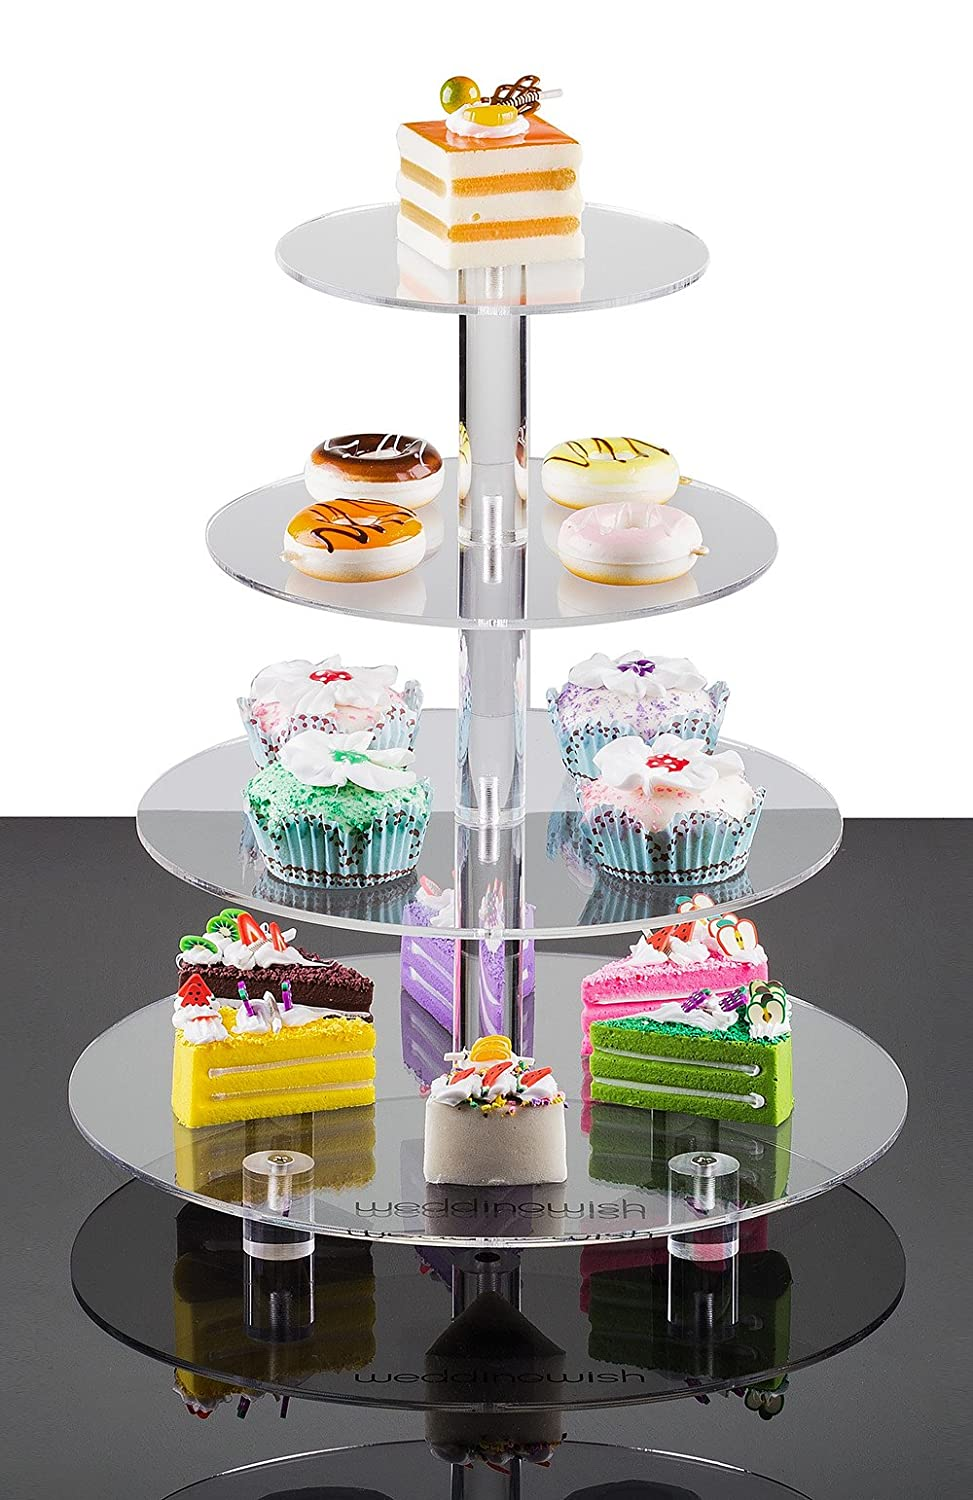 4-Tier Square Cupcake Stand By weddingwish Acrylic Tiered Cake Stand ...